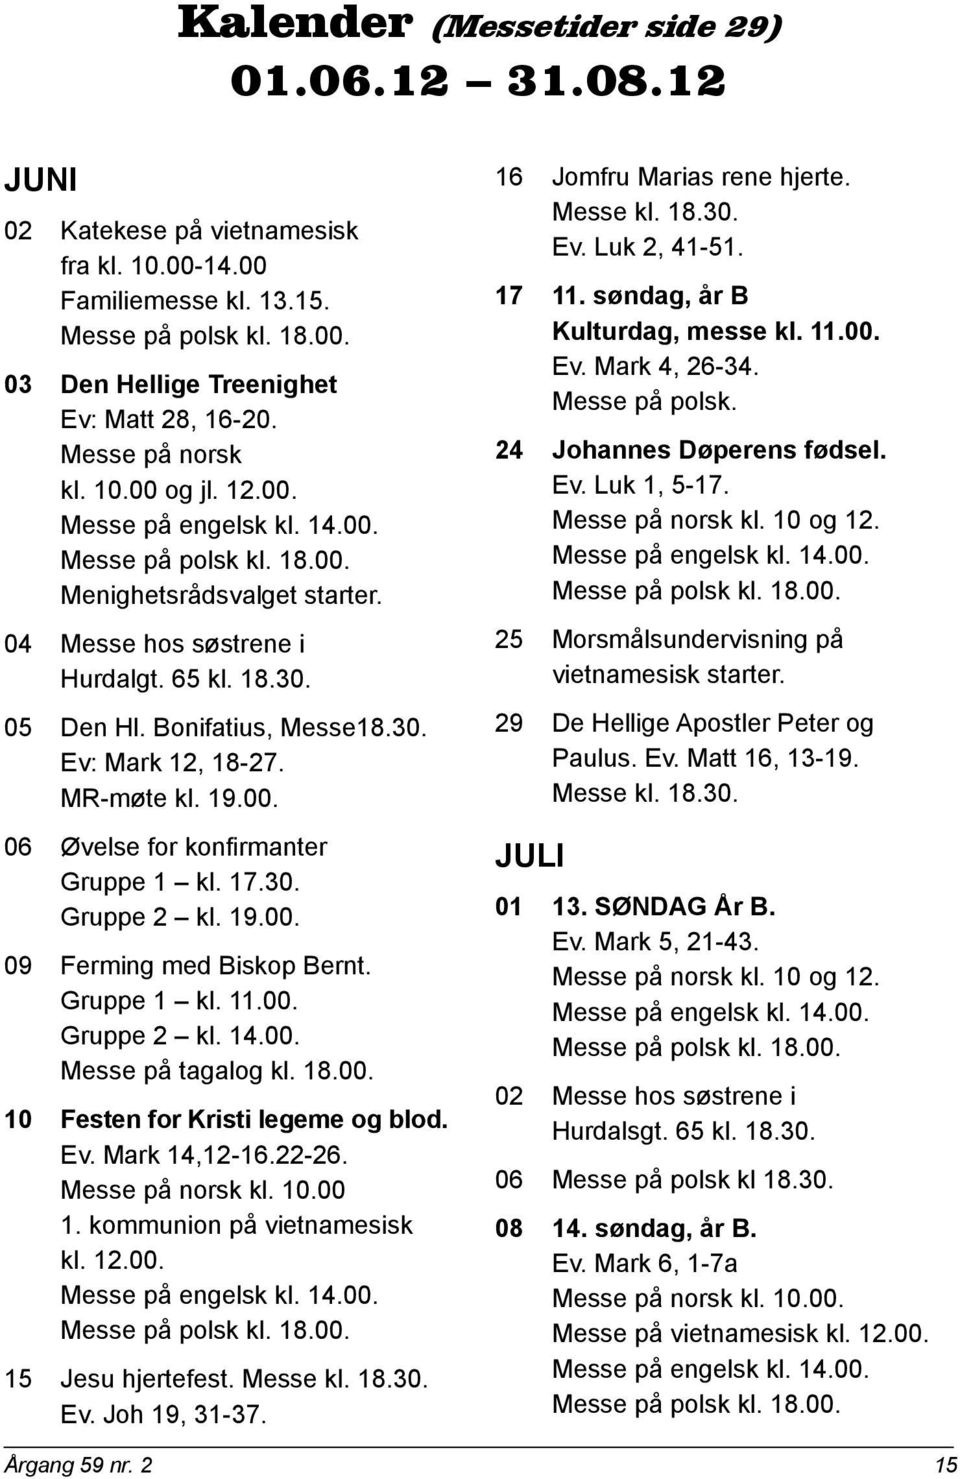 Bonifatius, Messe18.30. Ev: Mark 12, 18-27. MR-møte kl. 19.00. 06 Øvelse for konfirmanter Gruppe 1 kl. 17.30. Gruppe 2 kl. 19.00. 09 Ferming med Biskop Bernt. Gruppe 1 kl. 11.00. Gruppe 2 kl. 14.00. Messe på tagalog kl.